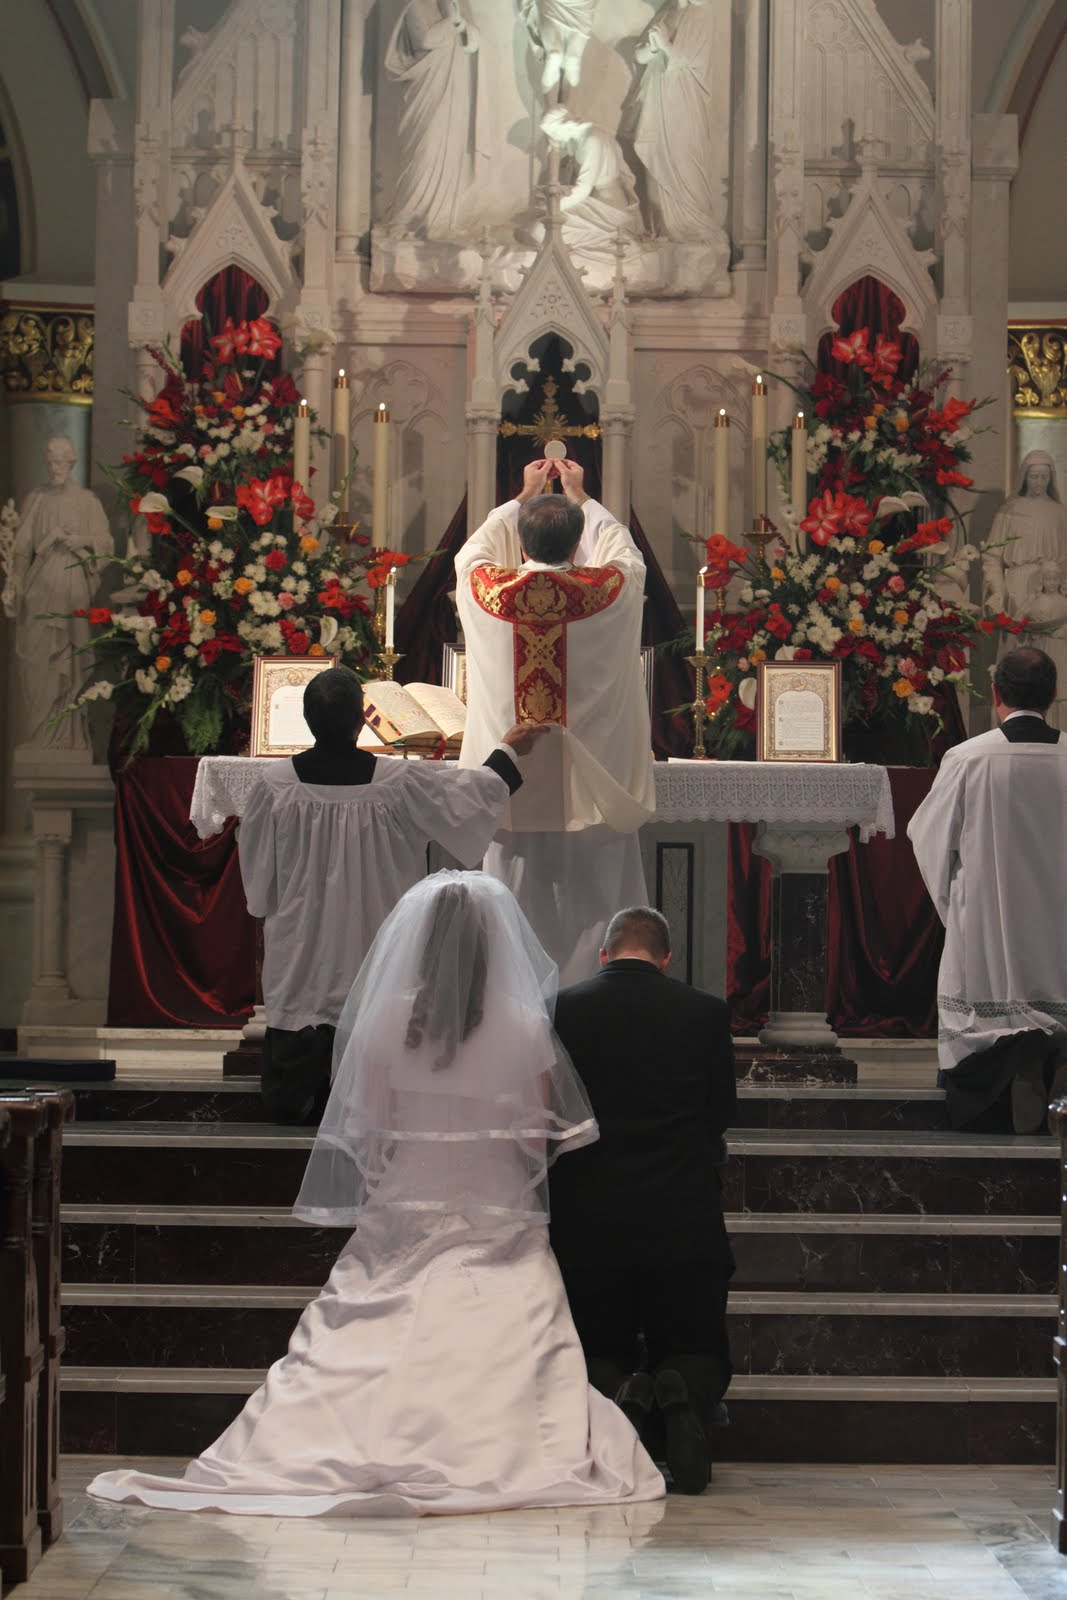 southern orders my second sung nuptial mass in the